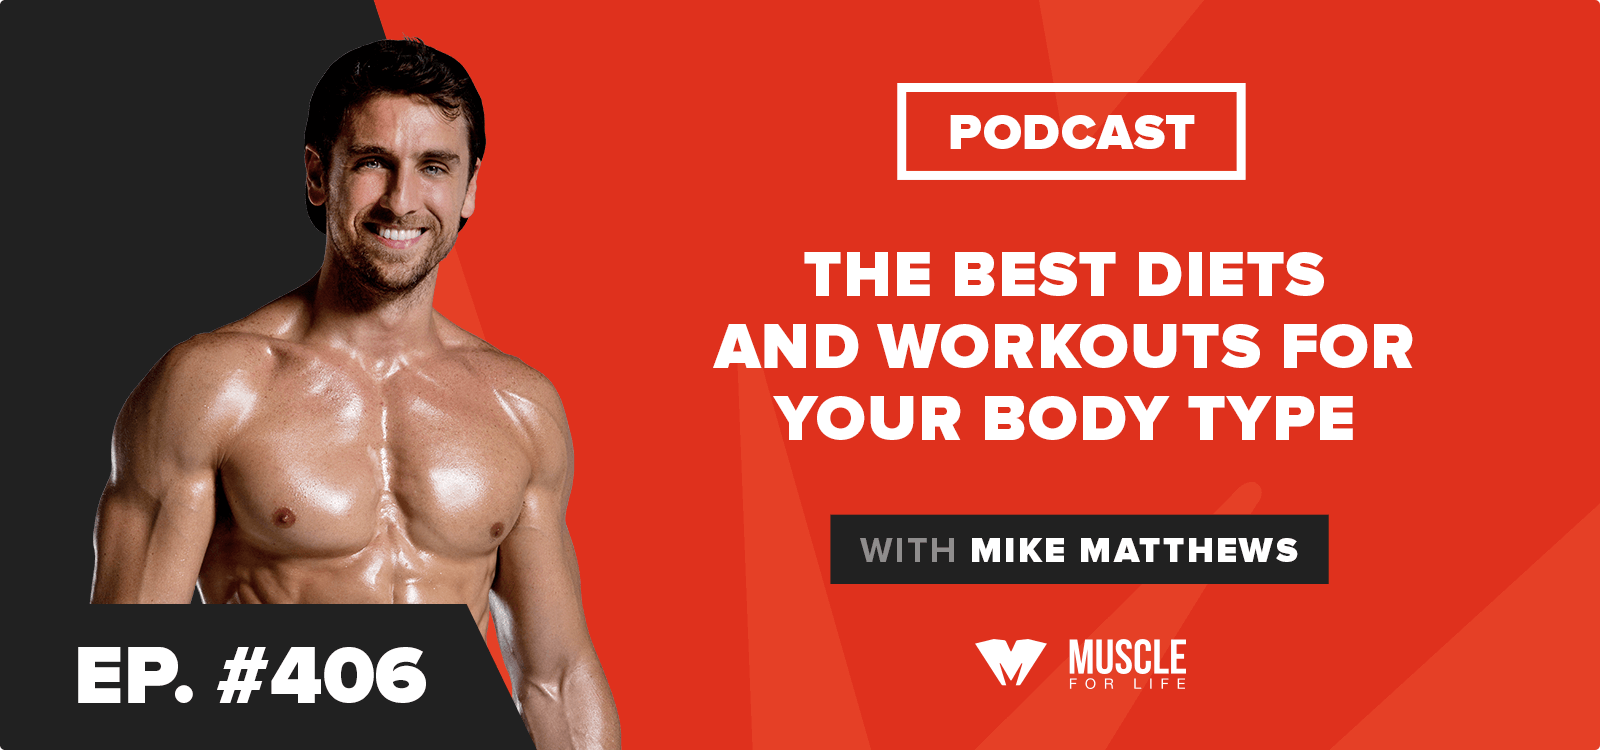 The Best Diets and Workouts for Your Body Type